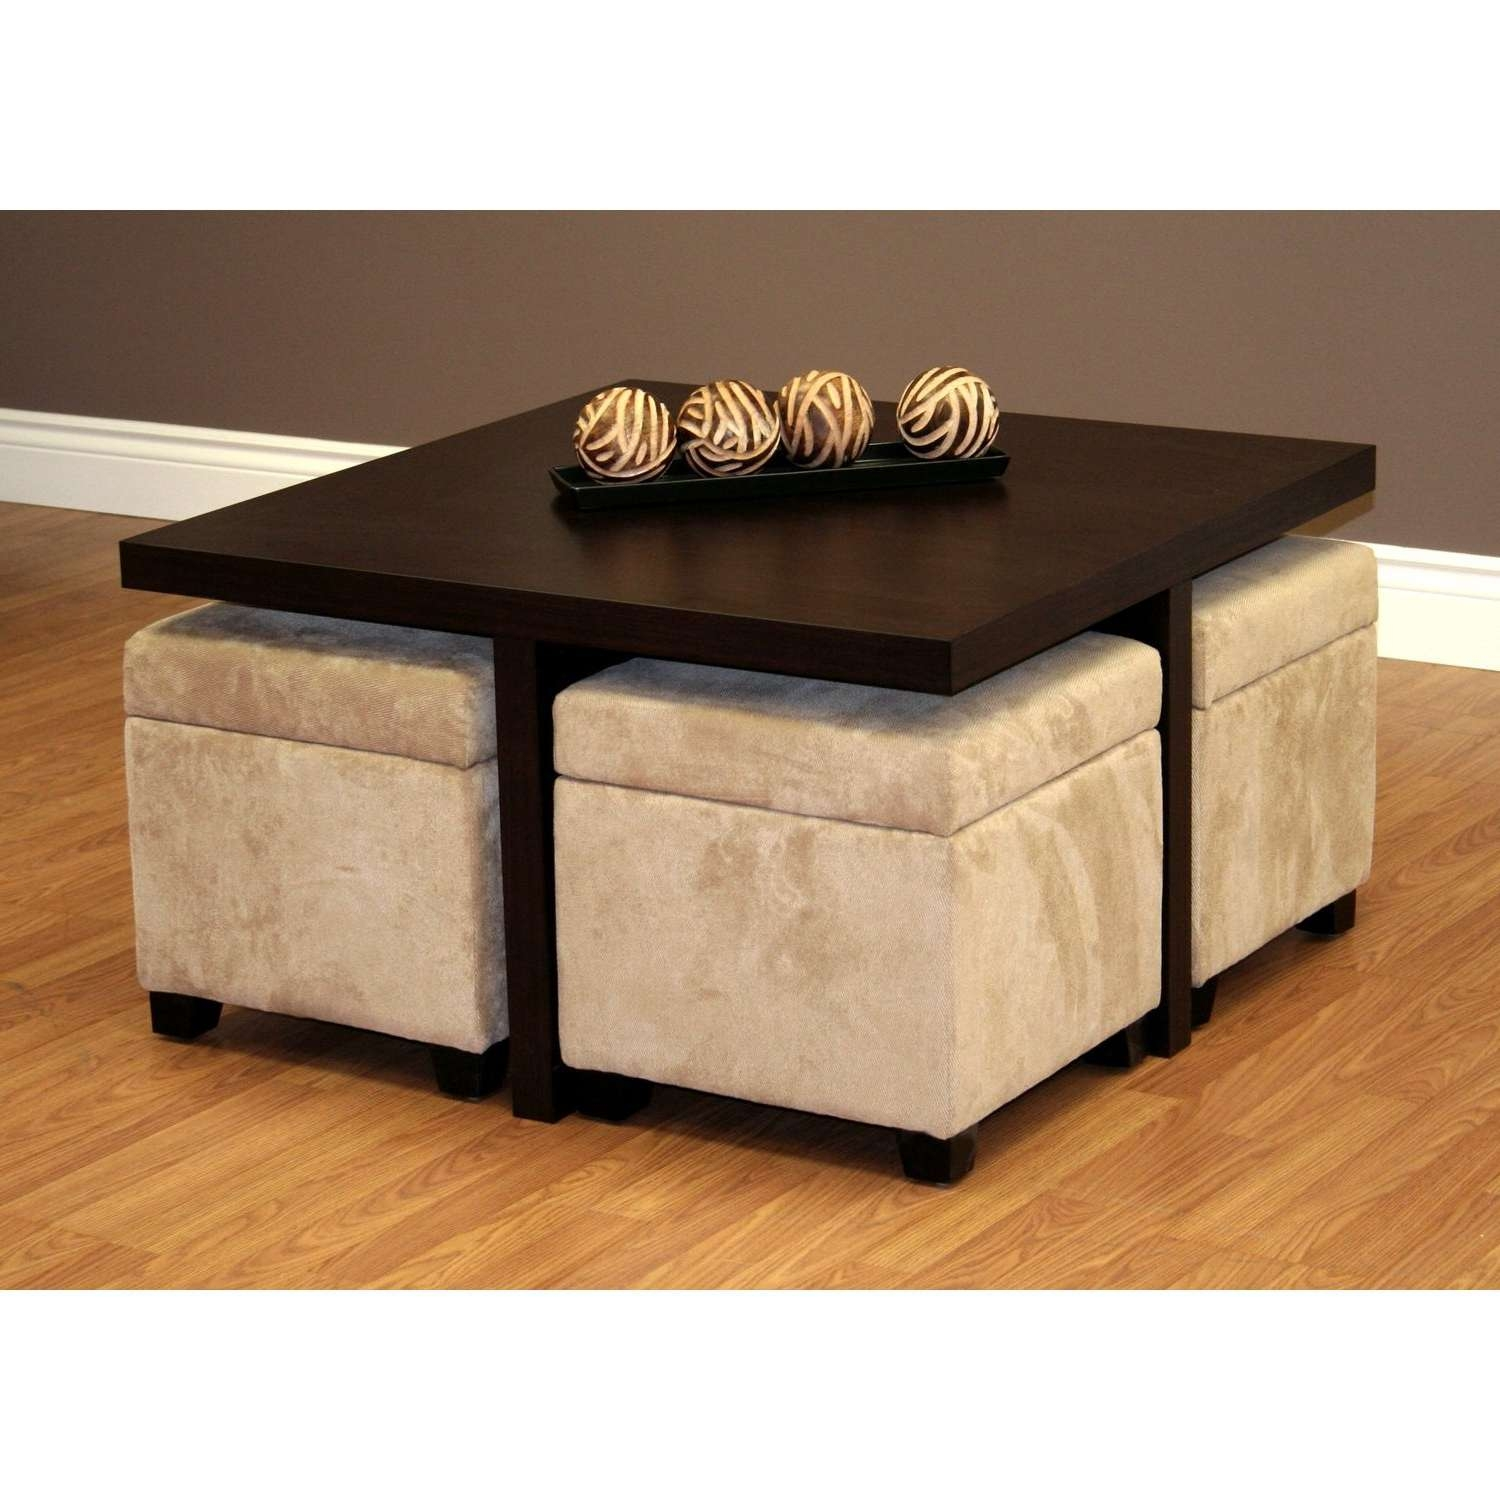 Most Recently Released Square Dark Wood Coffee Table Regarding Coffee Tables : Simple Coffee Tables Simple Black Coffee Table (View 15 of 20)